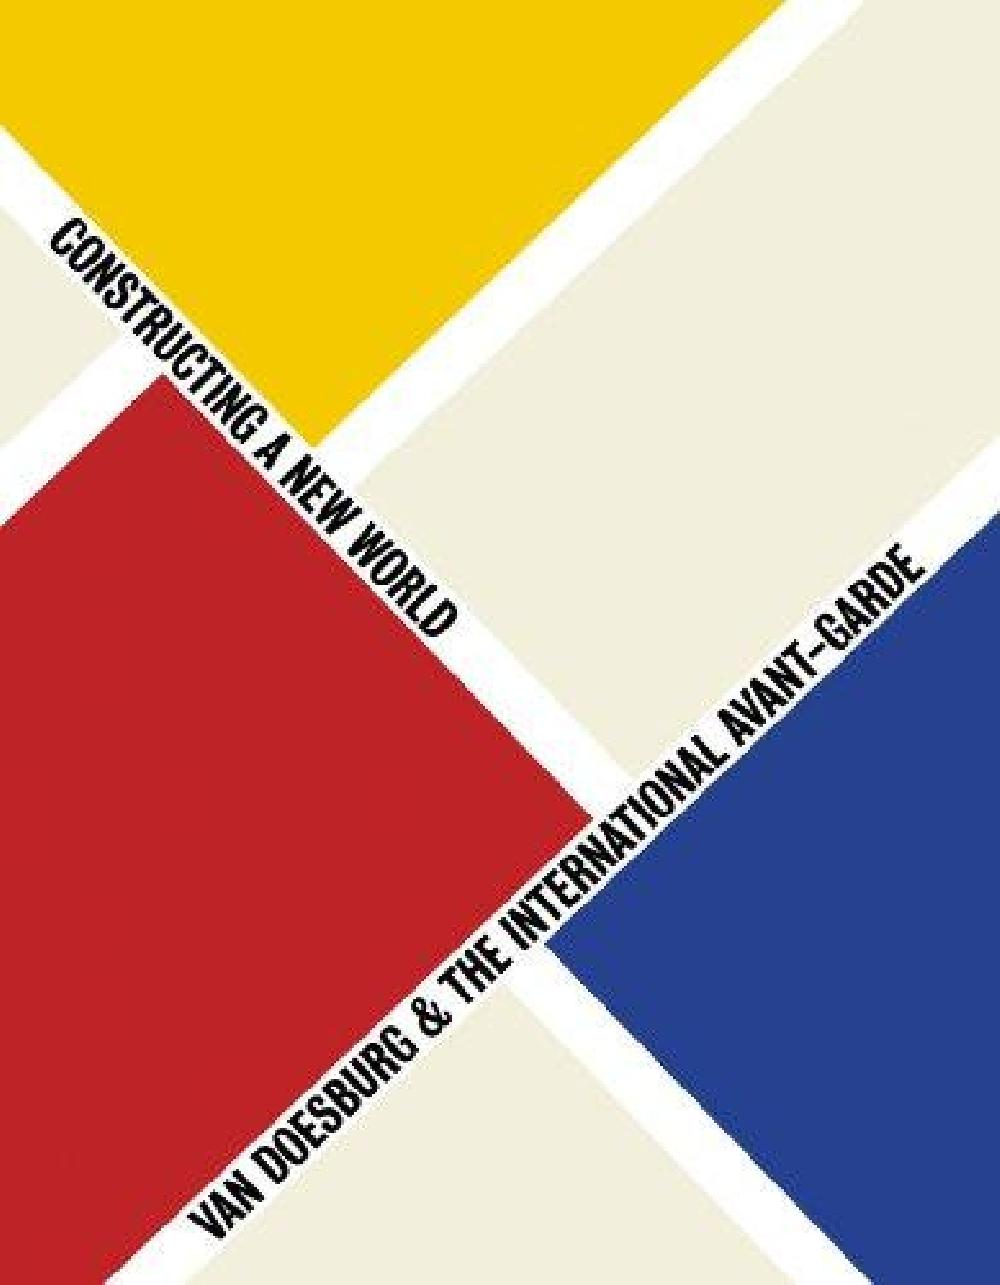 Stock Image Van Doesburg & the International Avant-Garde: Constructing a New World